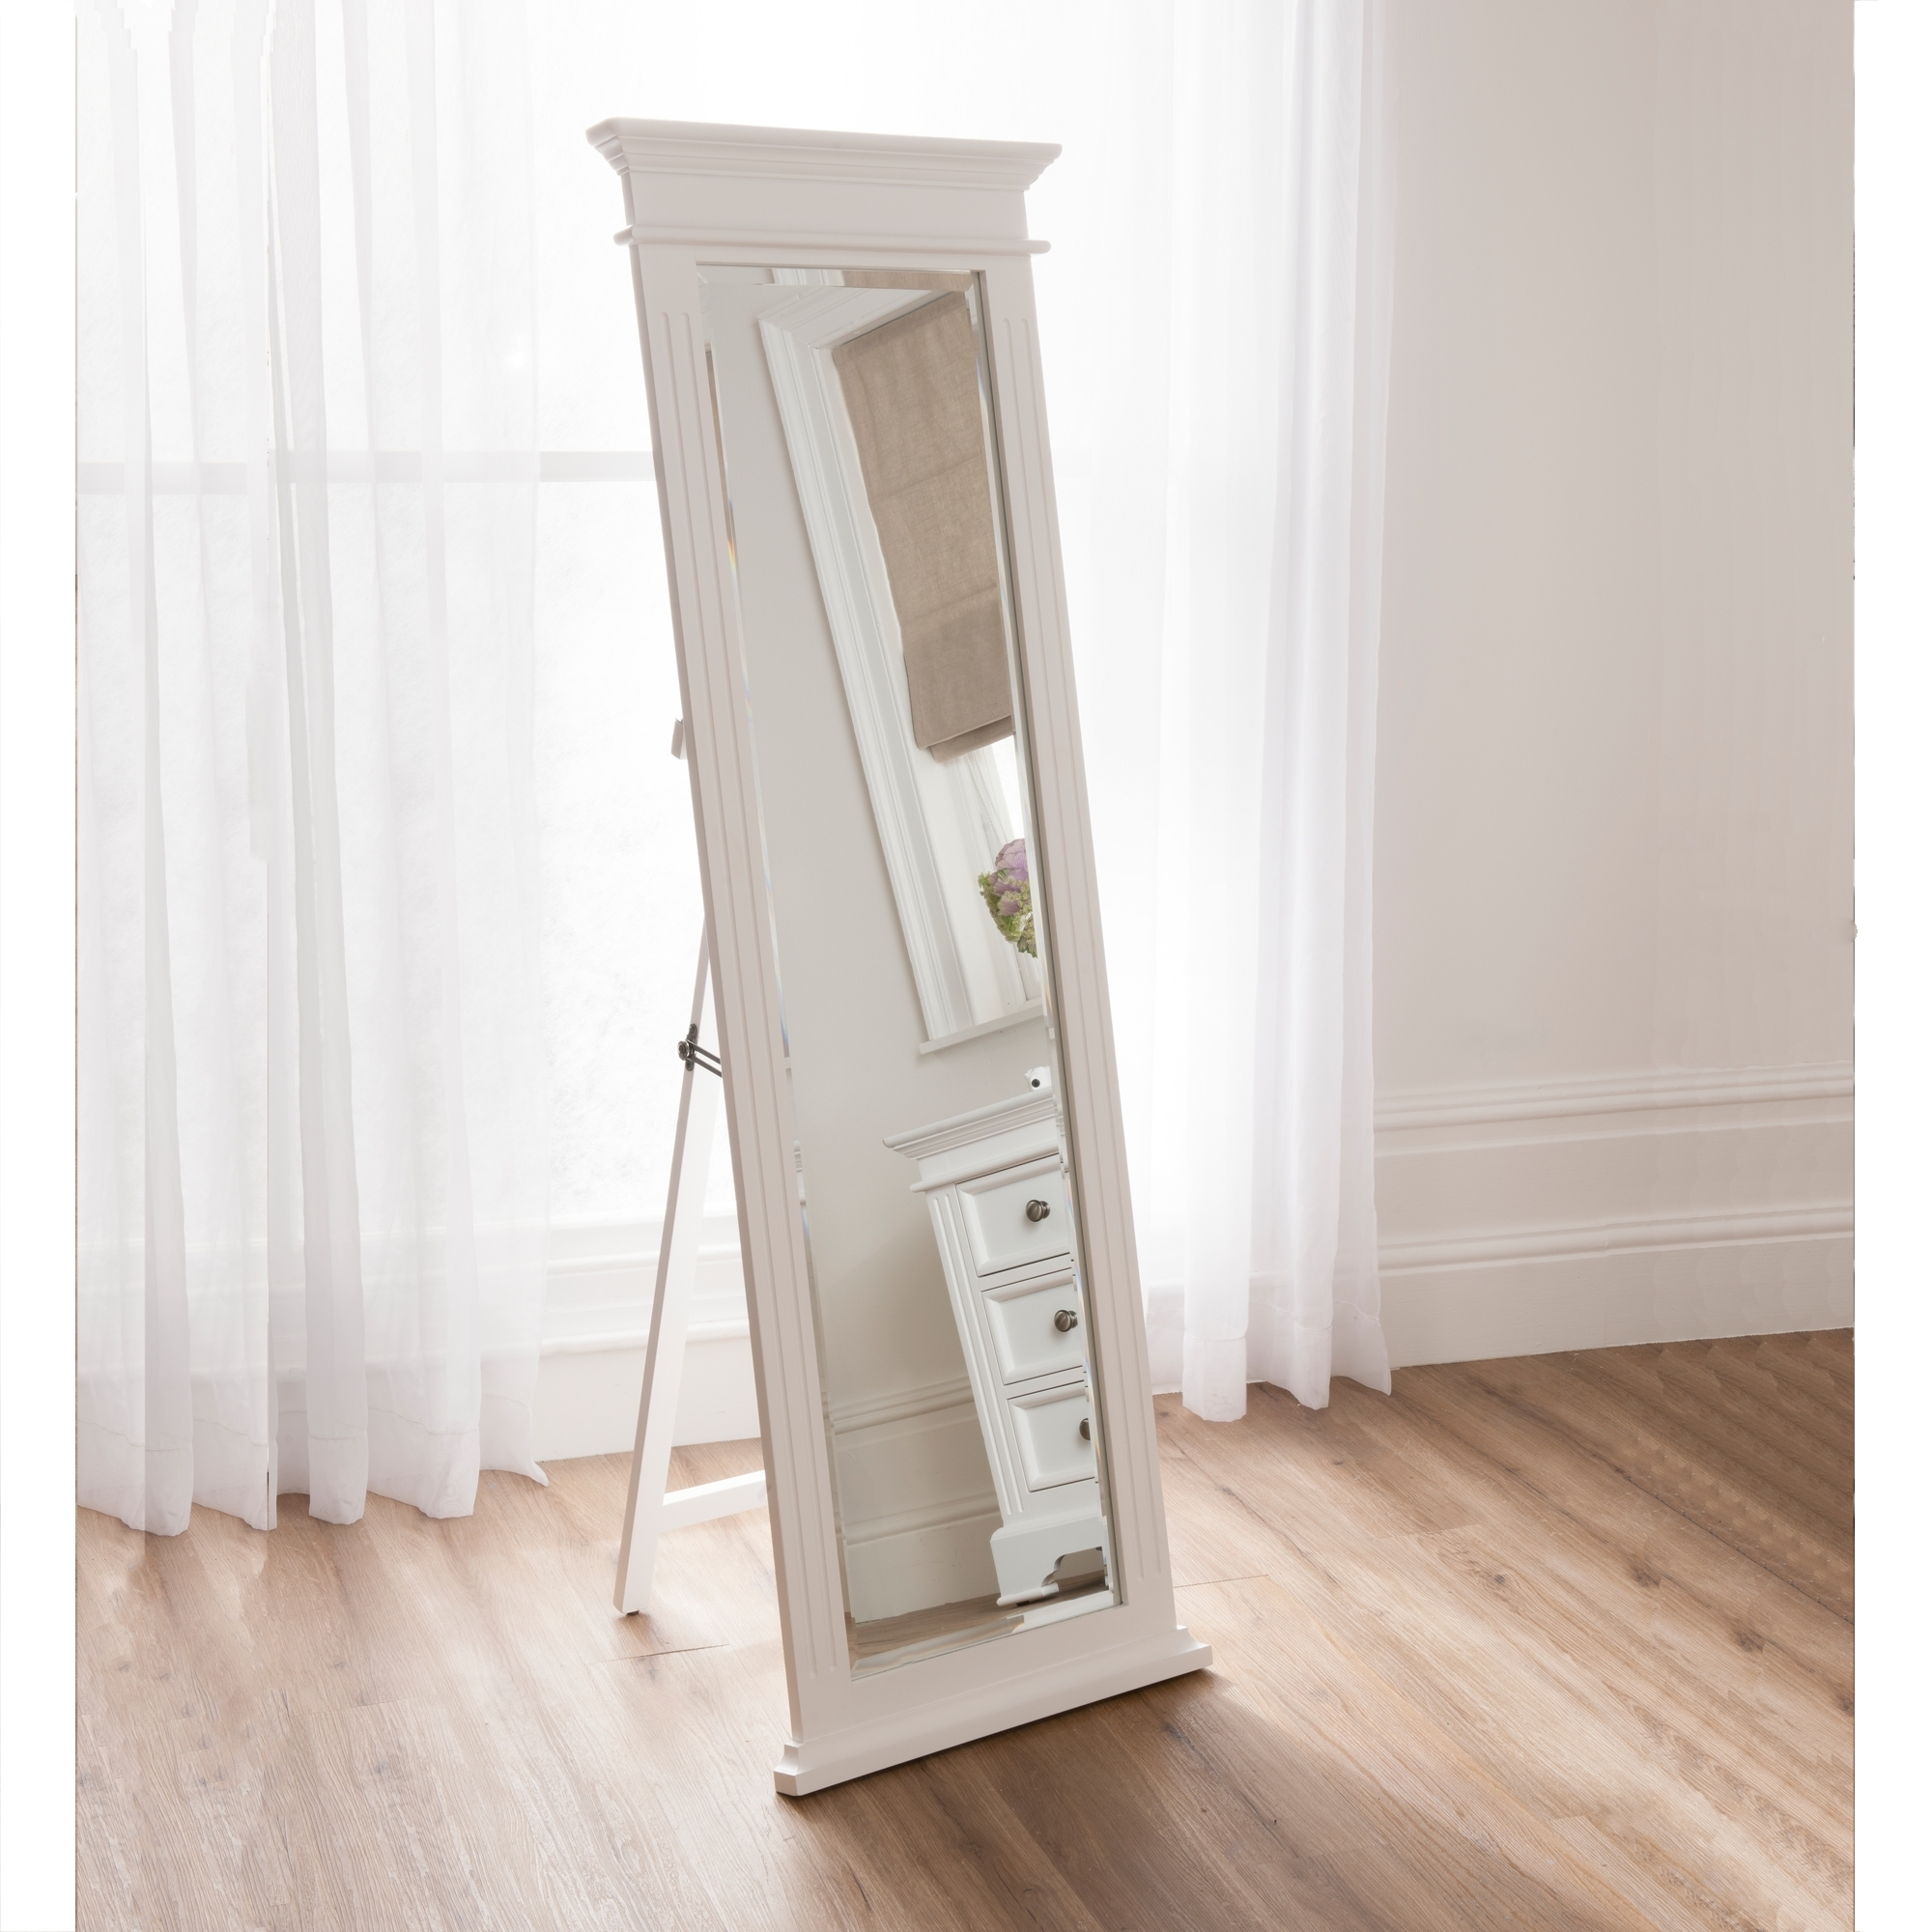 Cheval Mirrors French Style Mirrors Shab Chic Inside Shabby Chic Floor Standing Mirror (View 7 of 15)